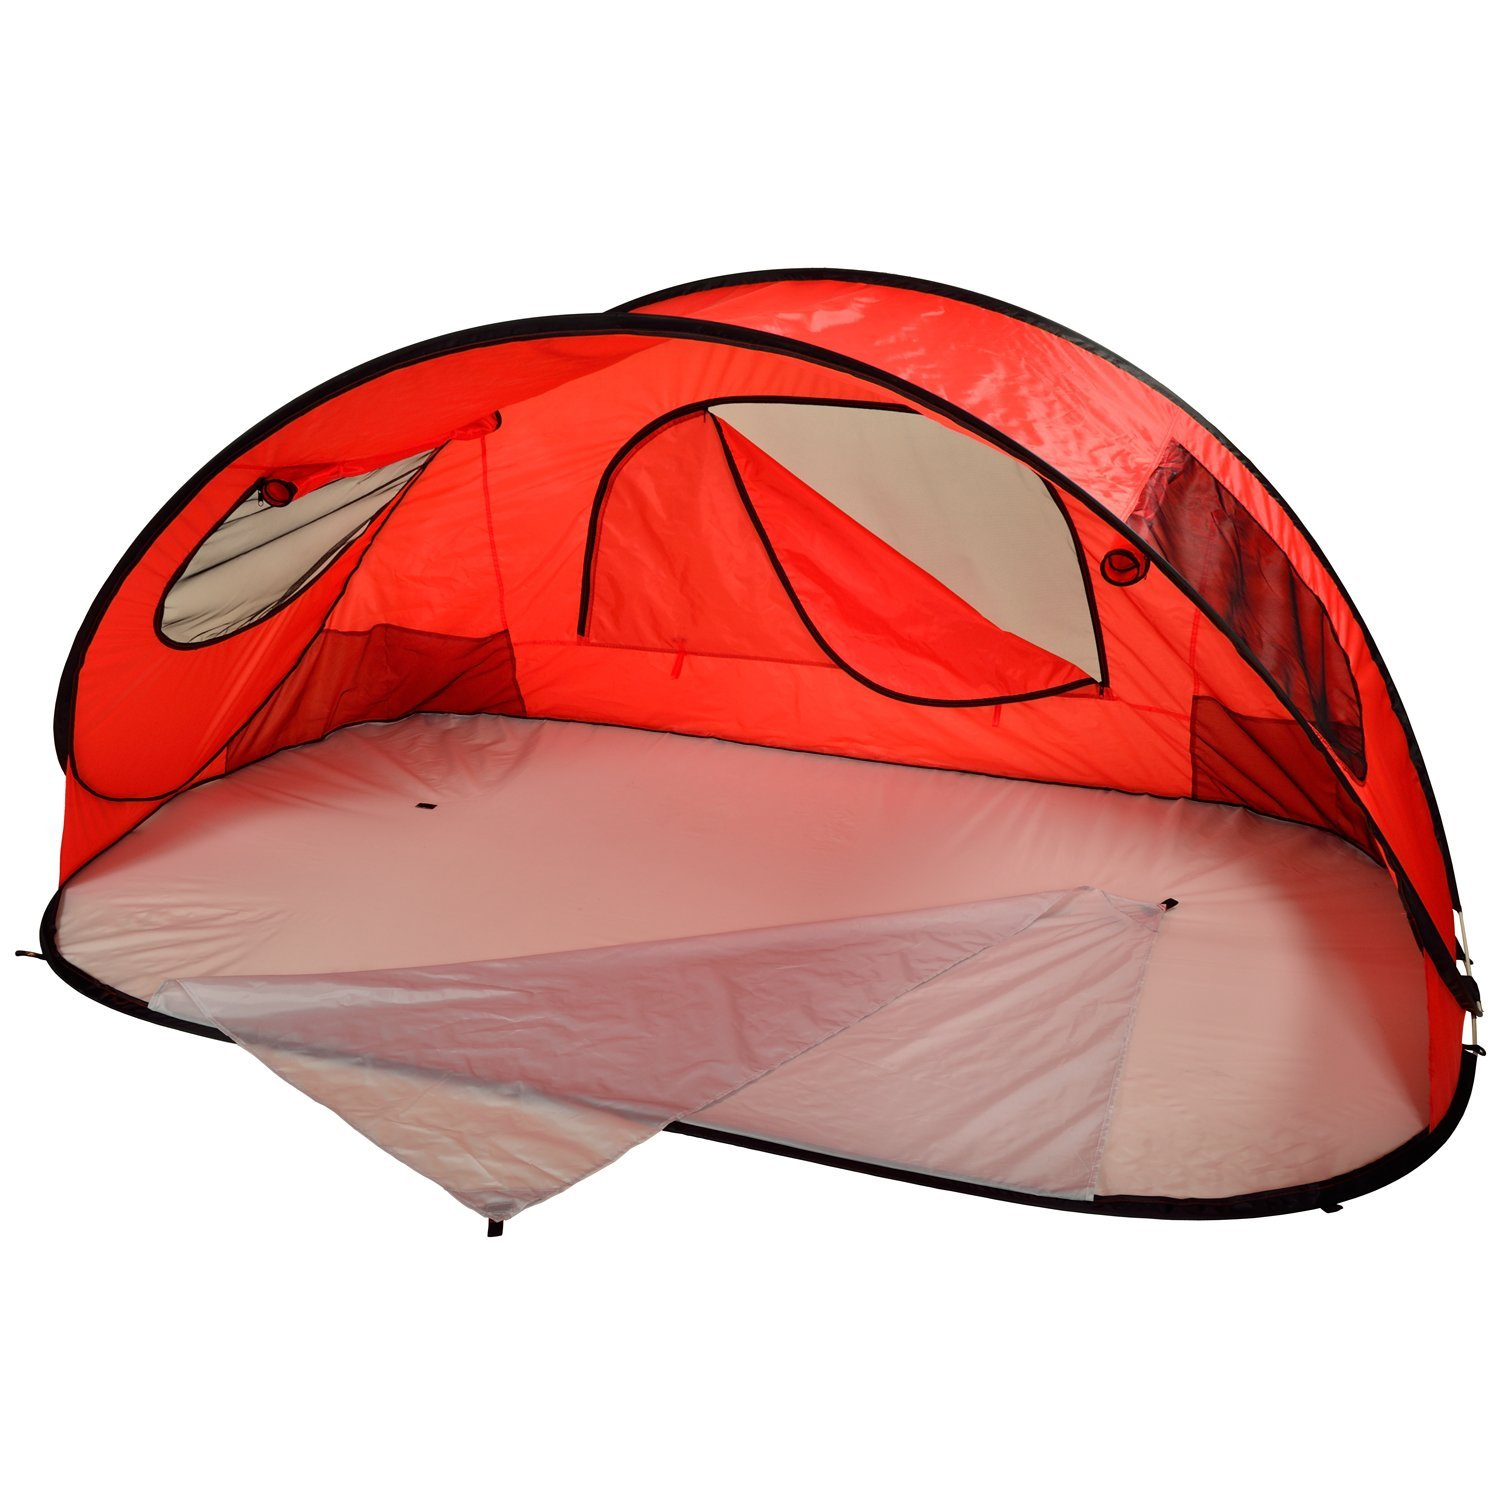 Picnic at Ascot Extra Large Instant Easy Beach Tent Sun Shelter - Red [並行輸入品] B07R3YFWSK